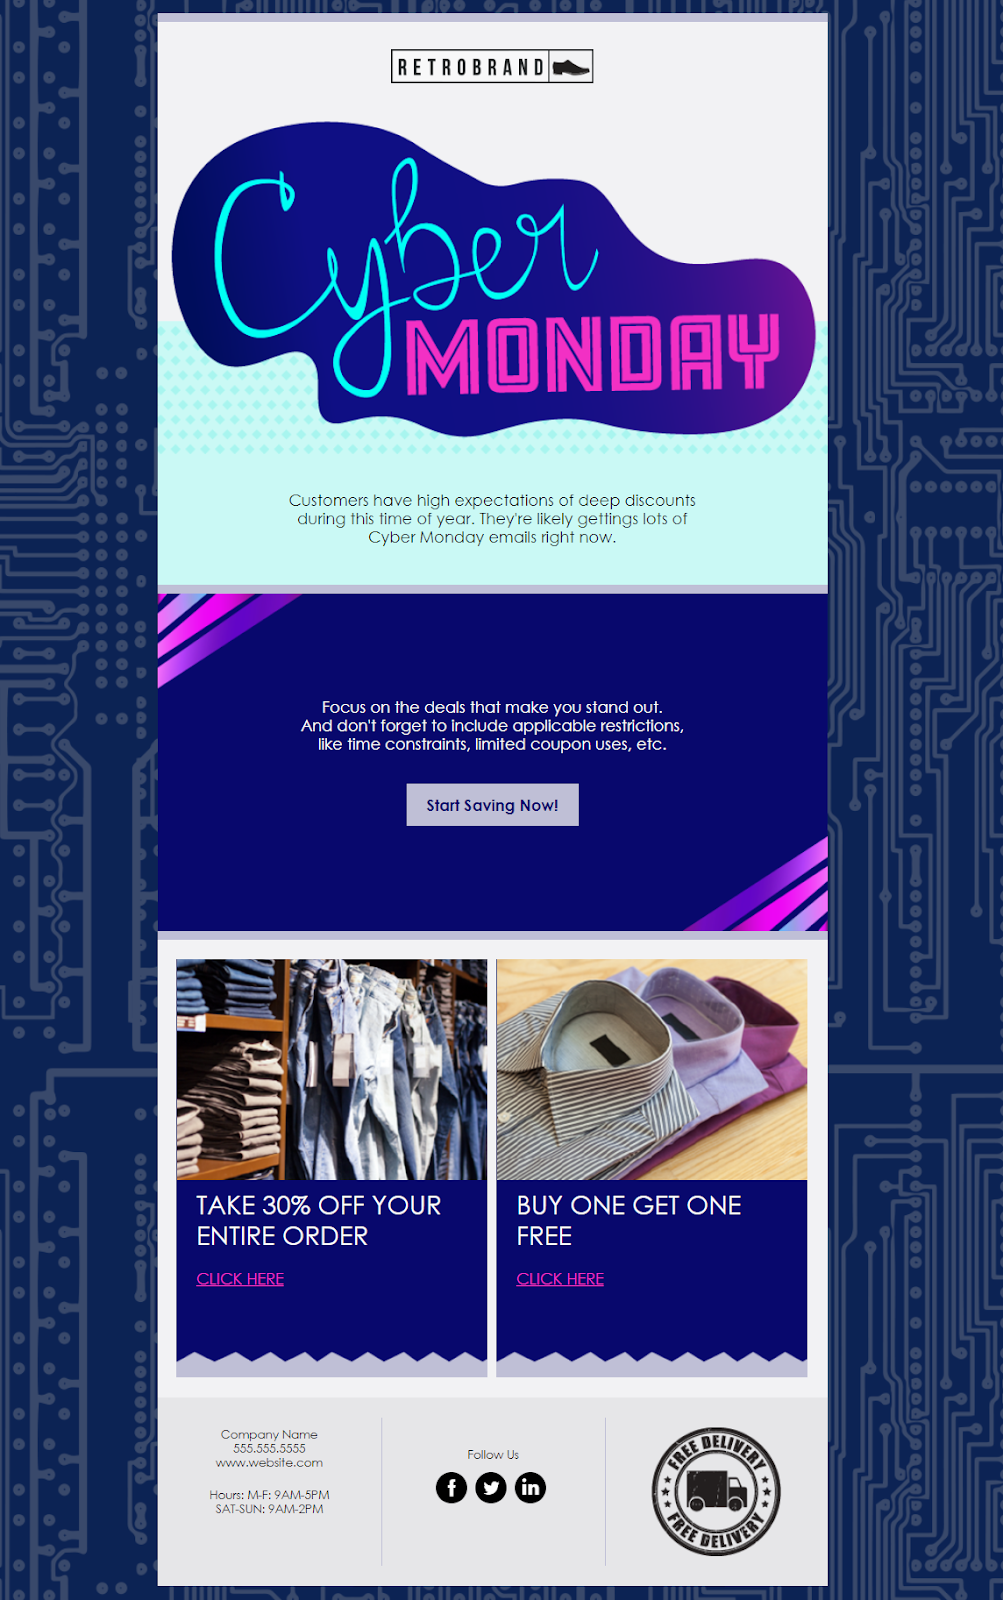 constant contact cyber monday email template is great for an invitation because of its exclusive imagery and background